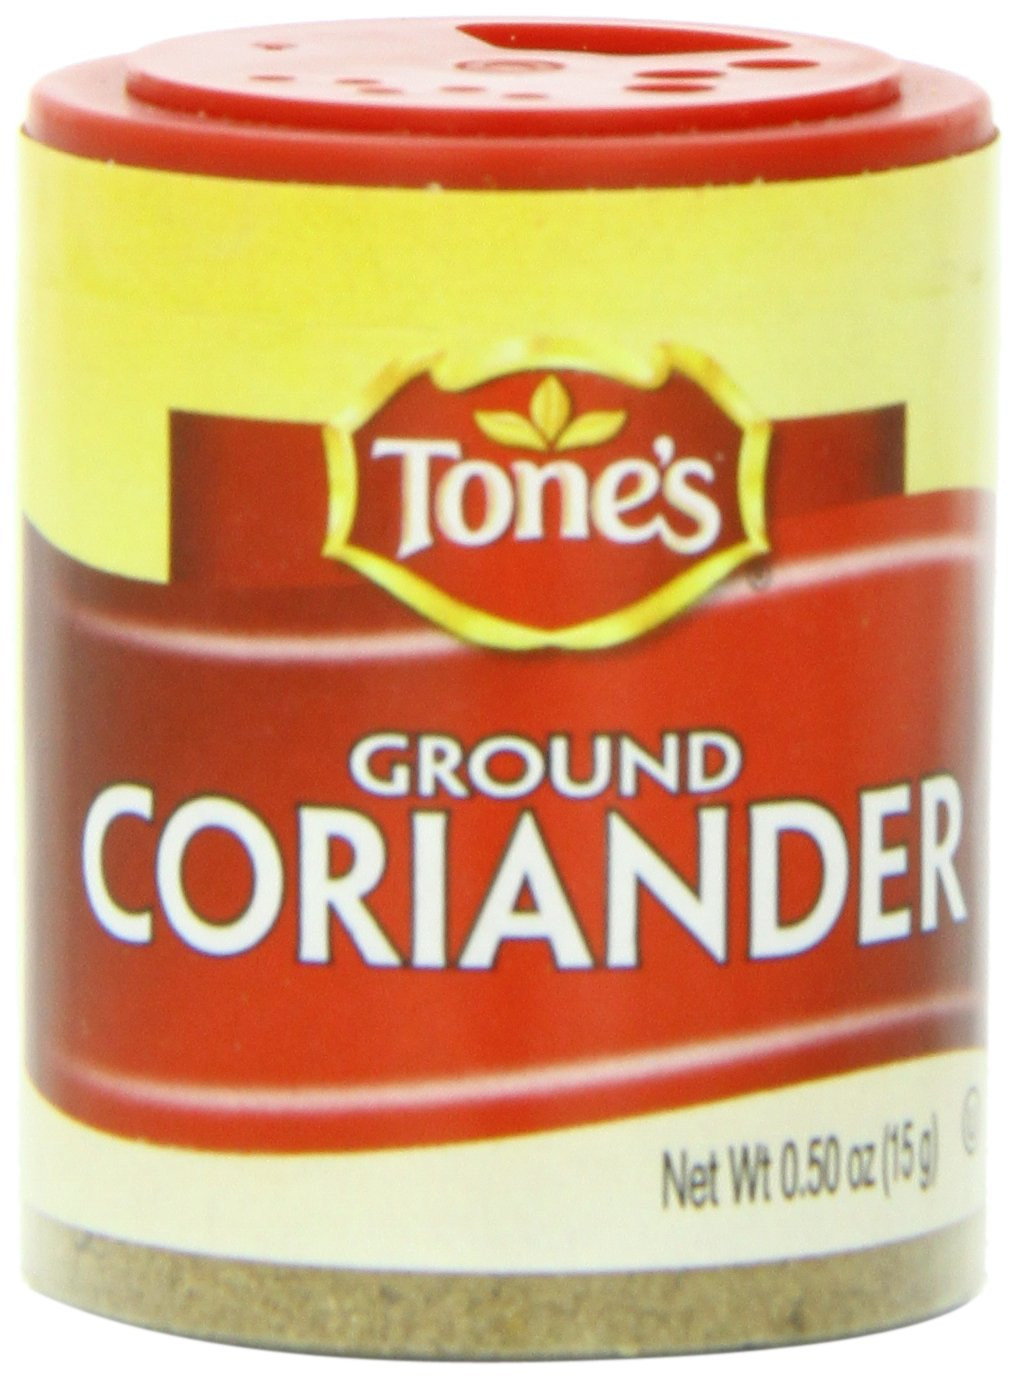 Tone's Mini's Coriander, Ground, 0.50 Ounce (Pack of 6) by Tone's (Image #1)